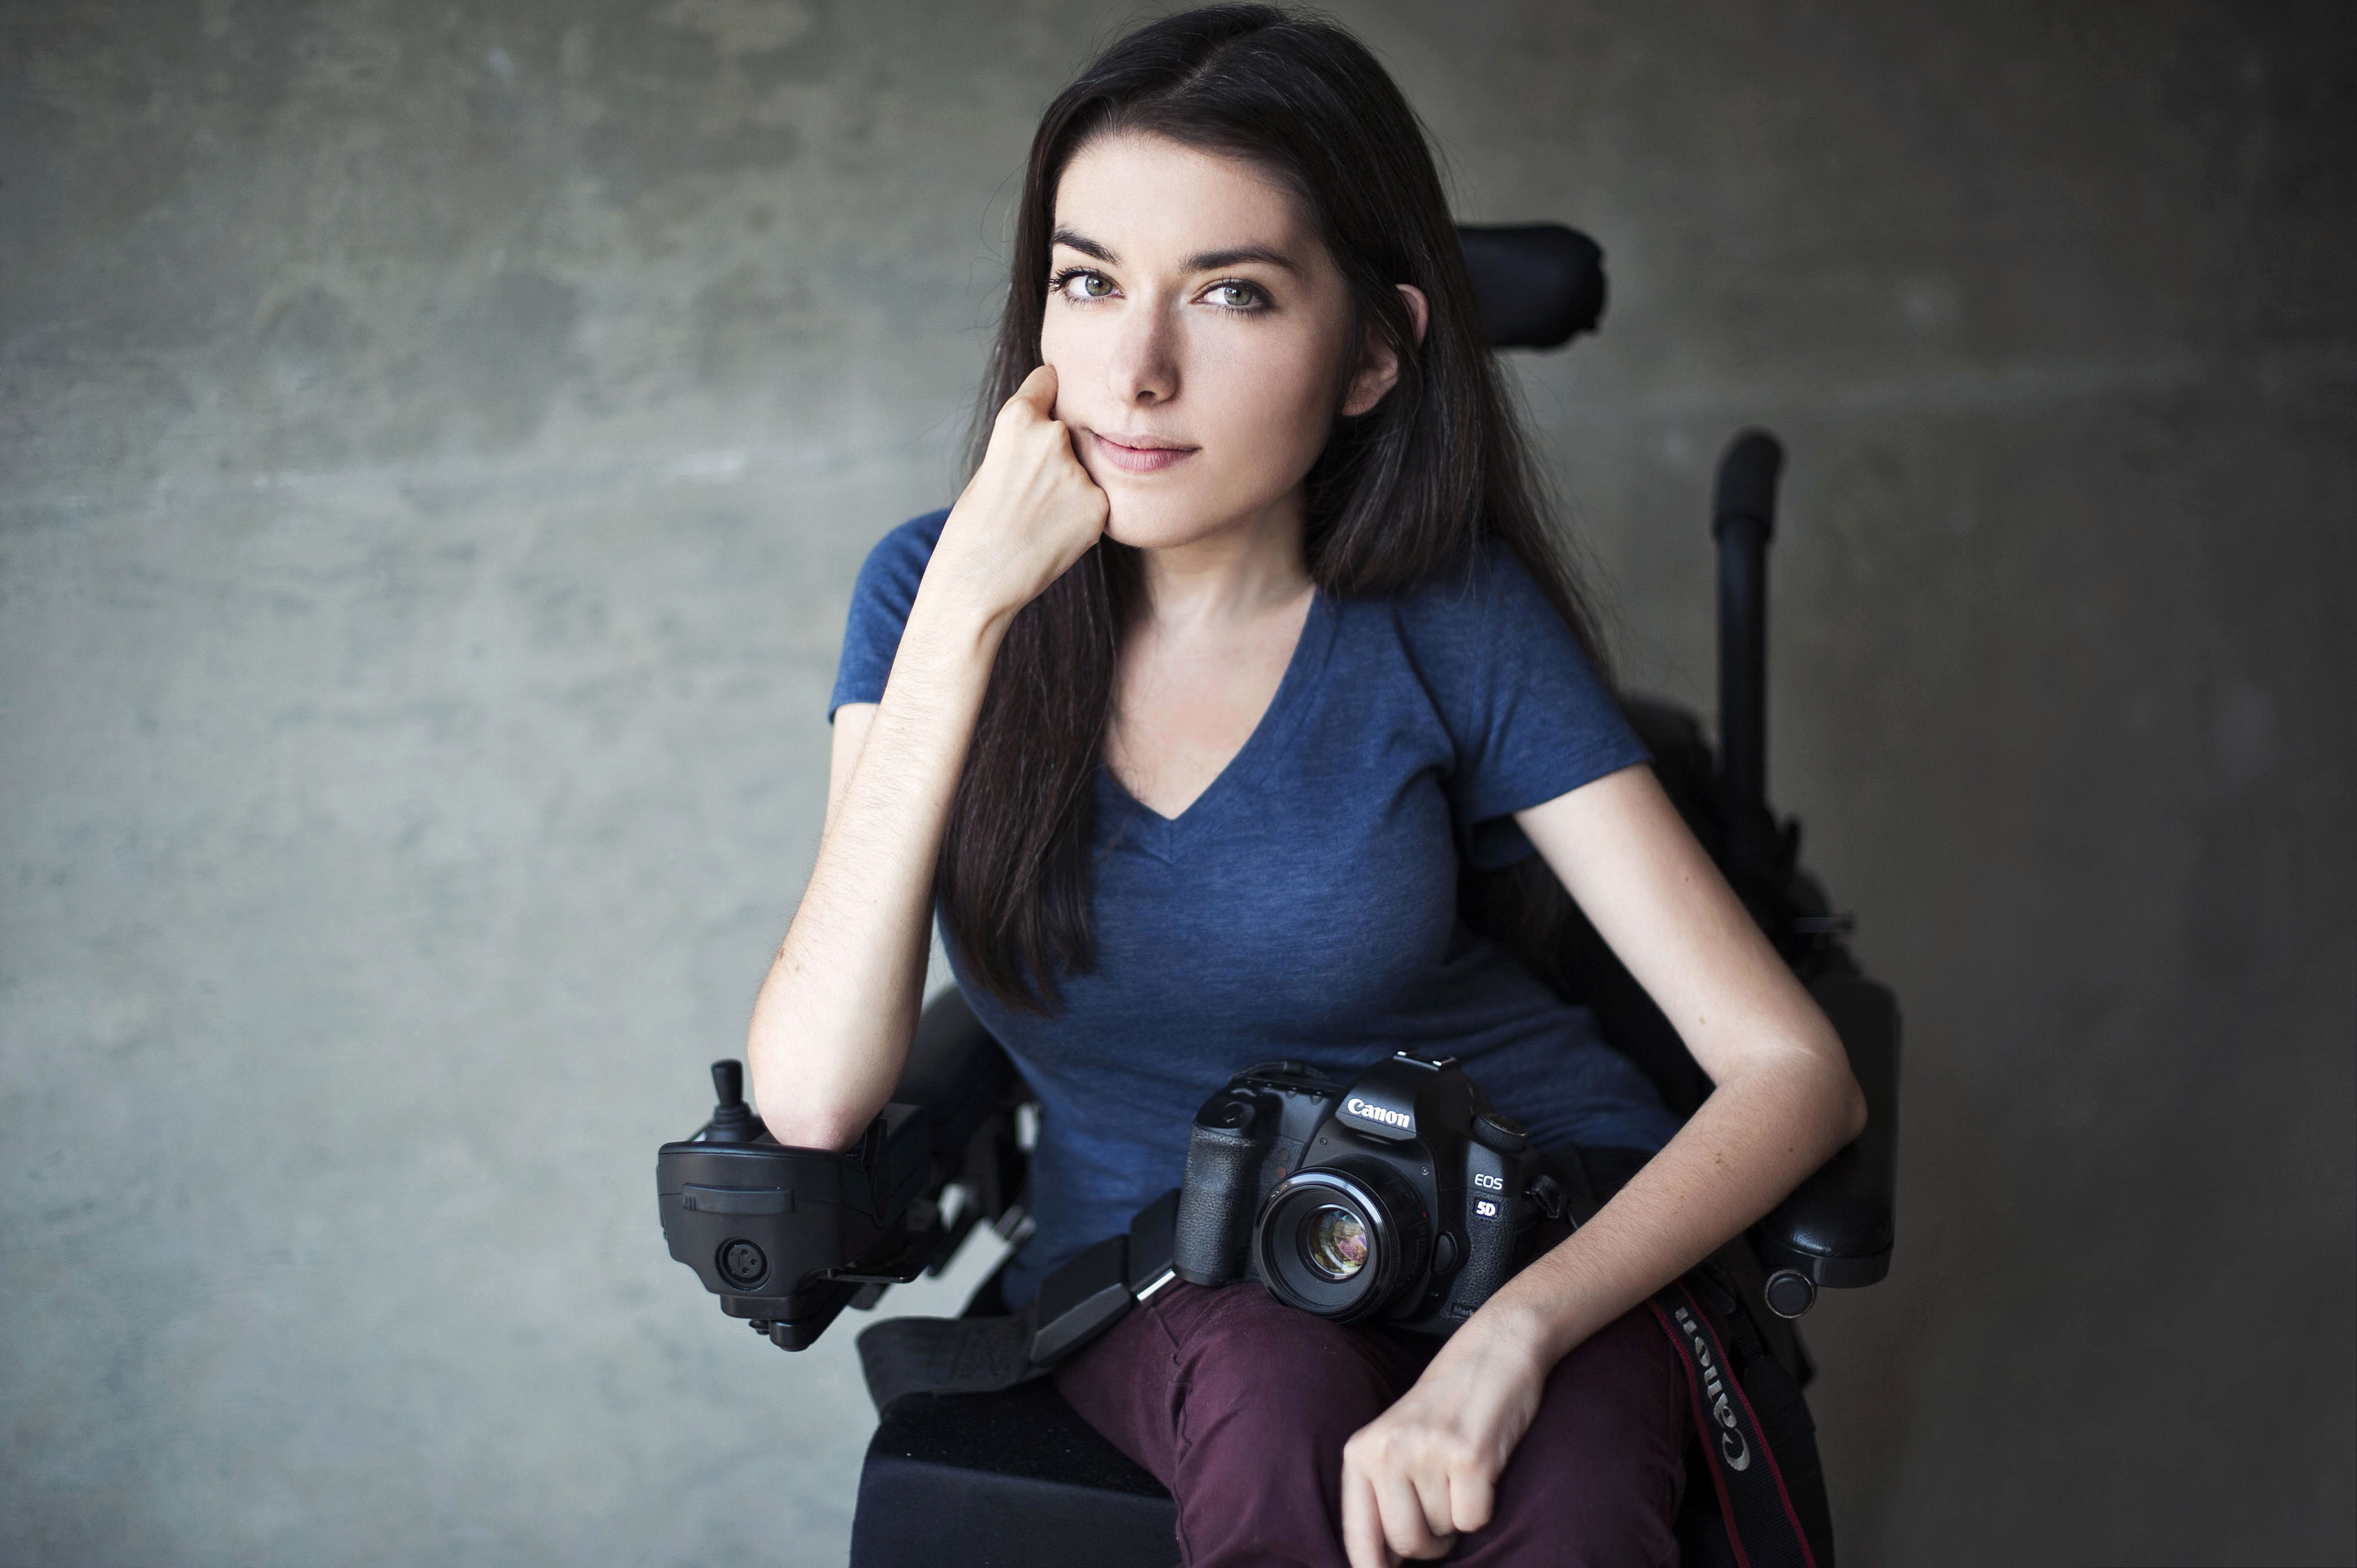 A woman sitting down with a DSLR camera on her lap